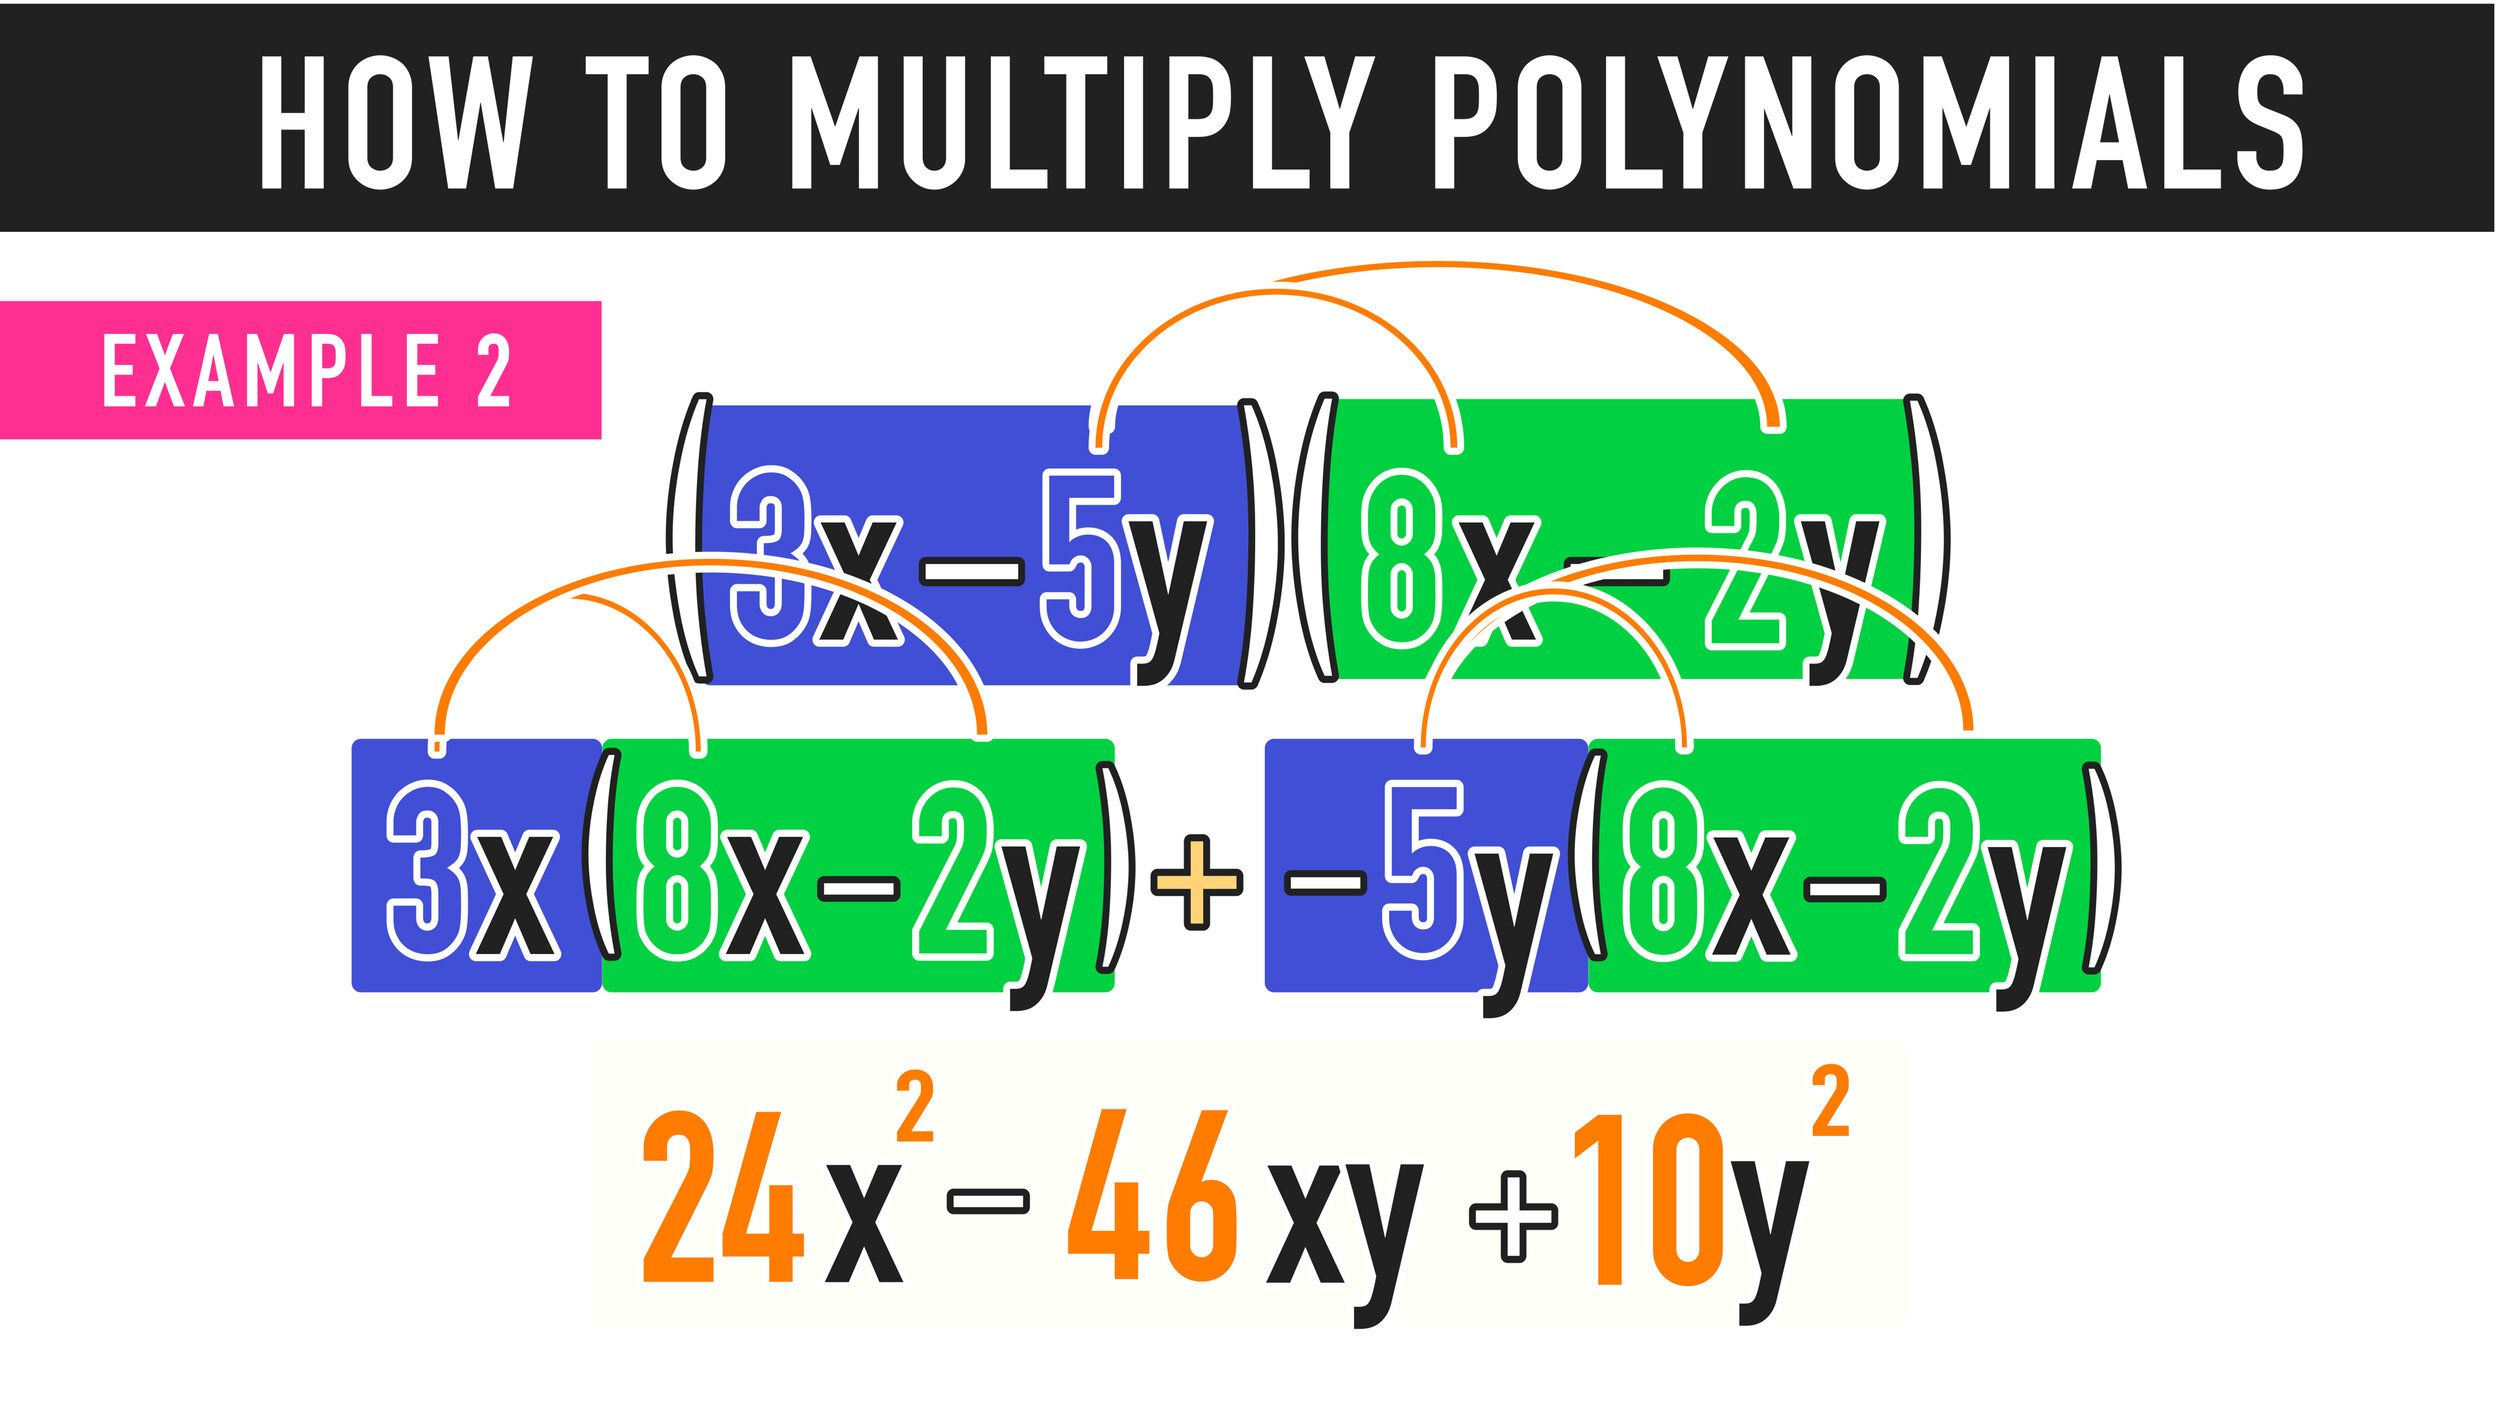 Multiplying Polynomials The Complete Guide Mashup Math In 2020 Math Polynomials Math Blog